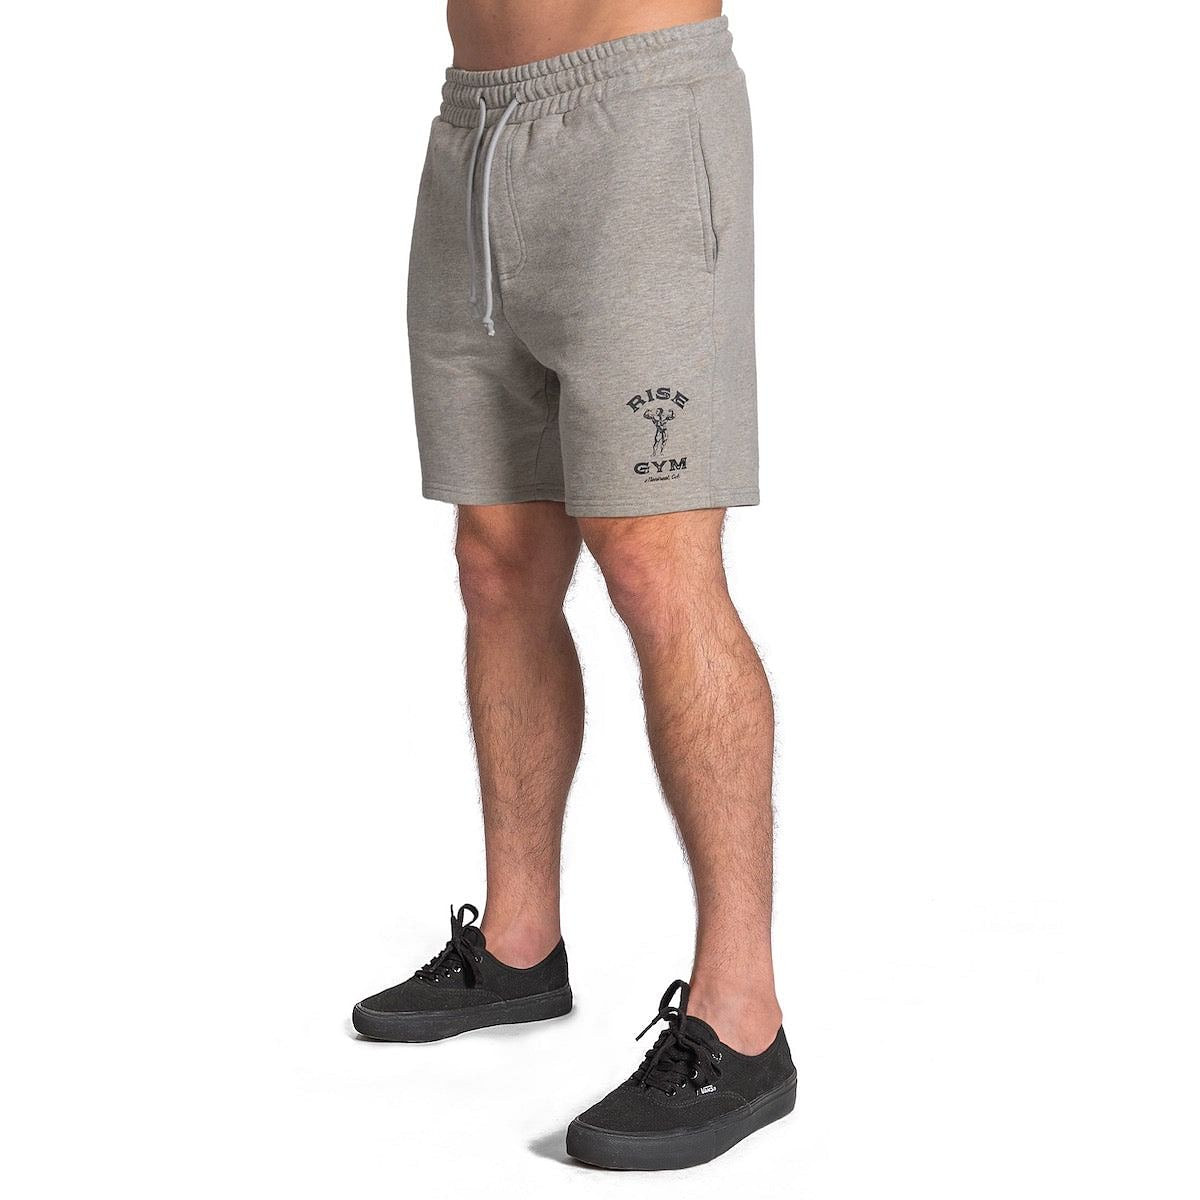 "Era Shorts 7"" - Grey"